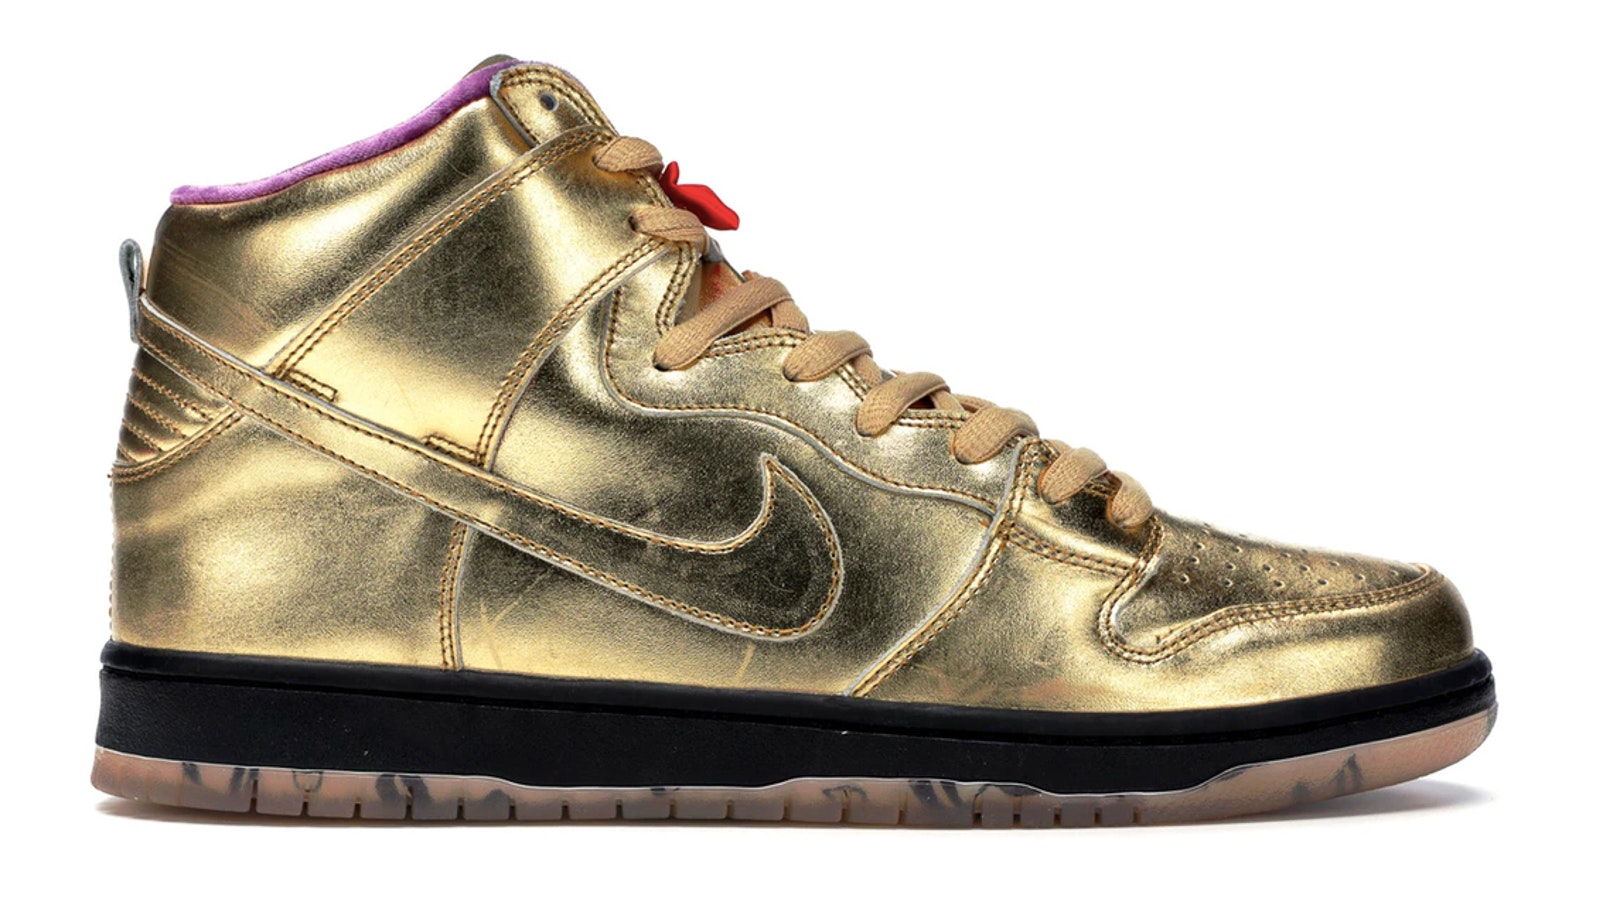 4761744030ba 16 Nike Dunks That Will Transform Your Outfit    ONE37pm